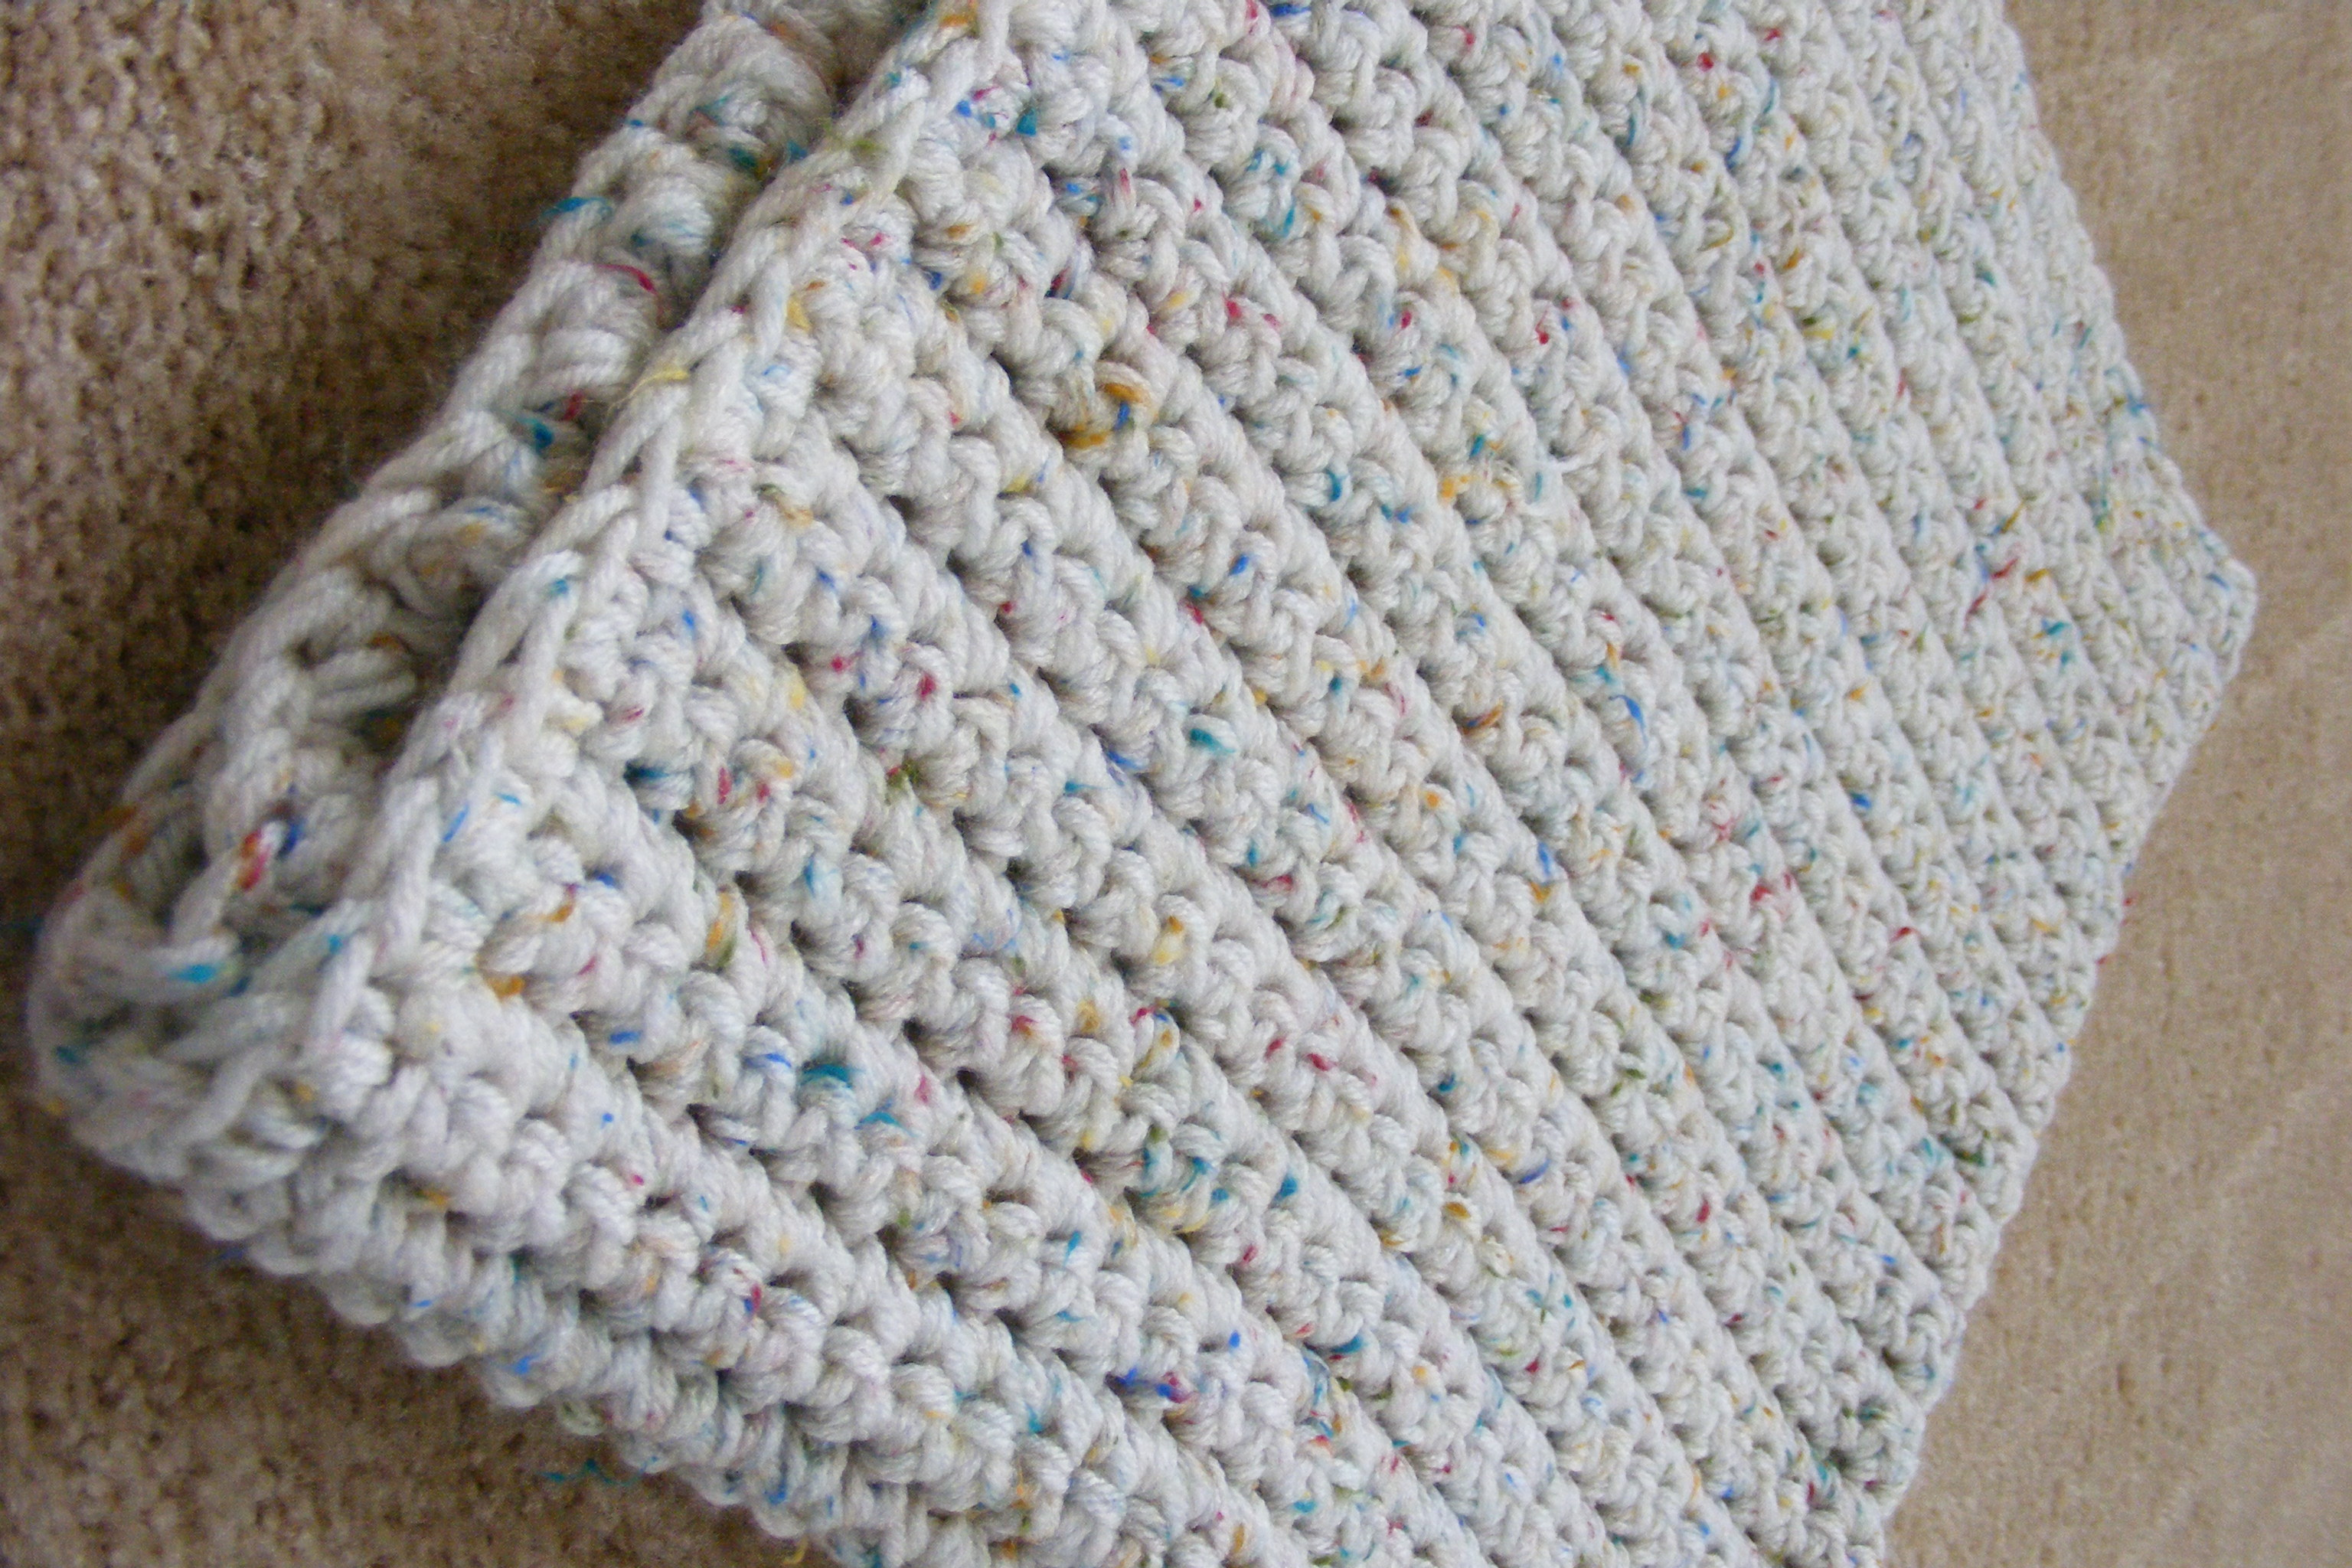 Crochet Baby Afghan : Single Crochet Baby Blanket Pattern GretchKals Yarny Adventures